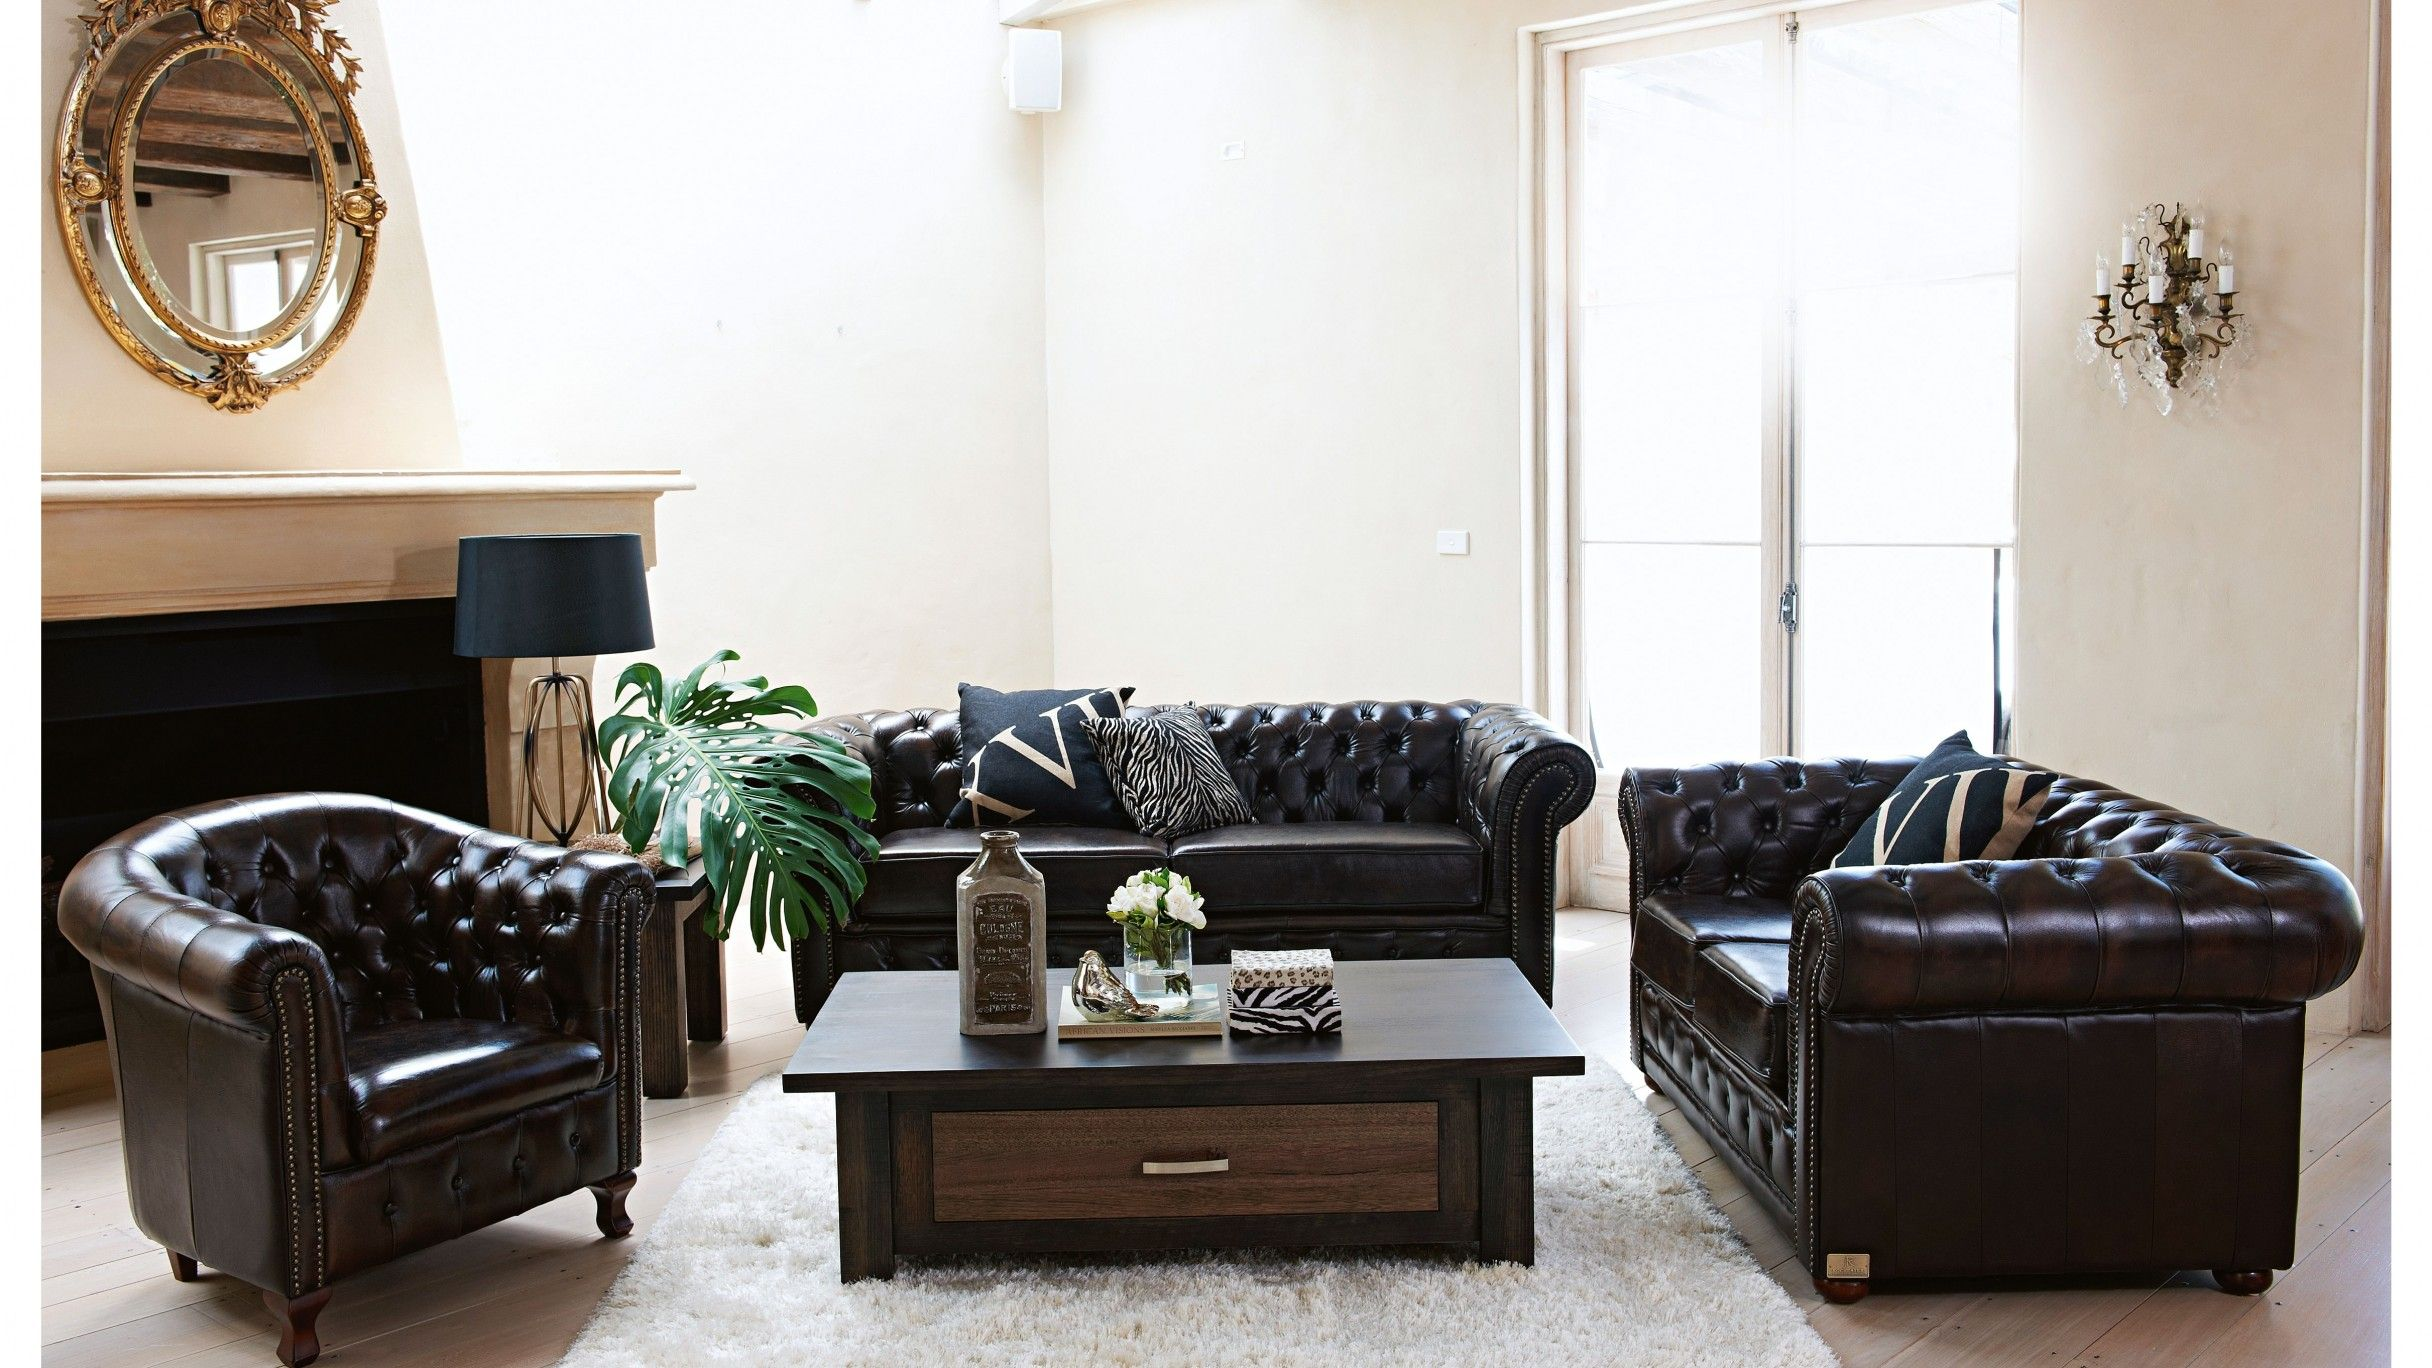 Lounge Suite From Harvey Norman About 7k Recreate The Look Of An English Manor In Your Home With Leather Sofa Living Room 3 Seater Leather Sofa Leather Sofa